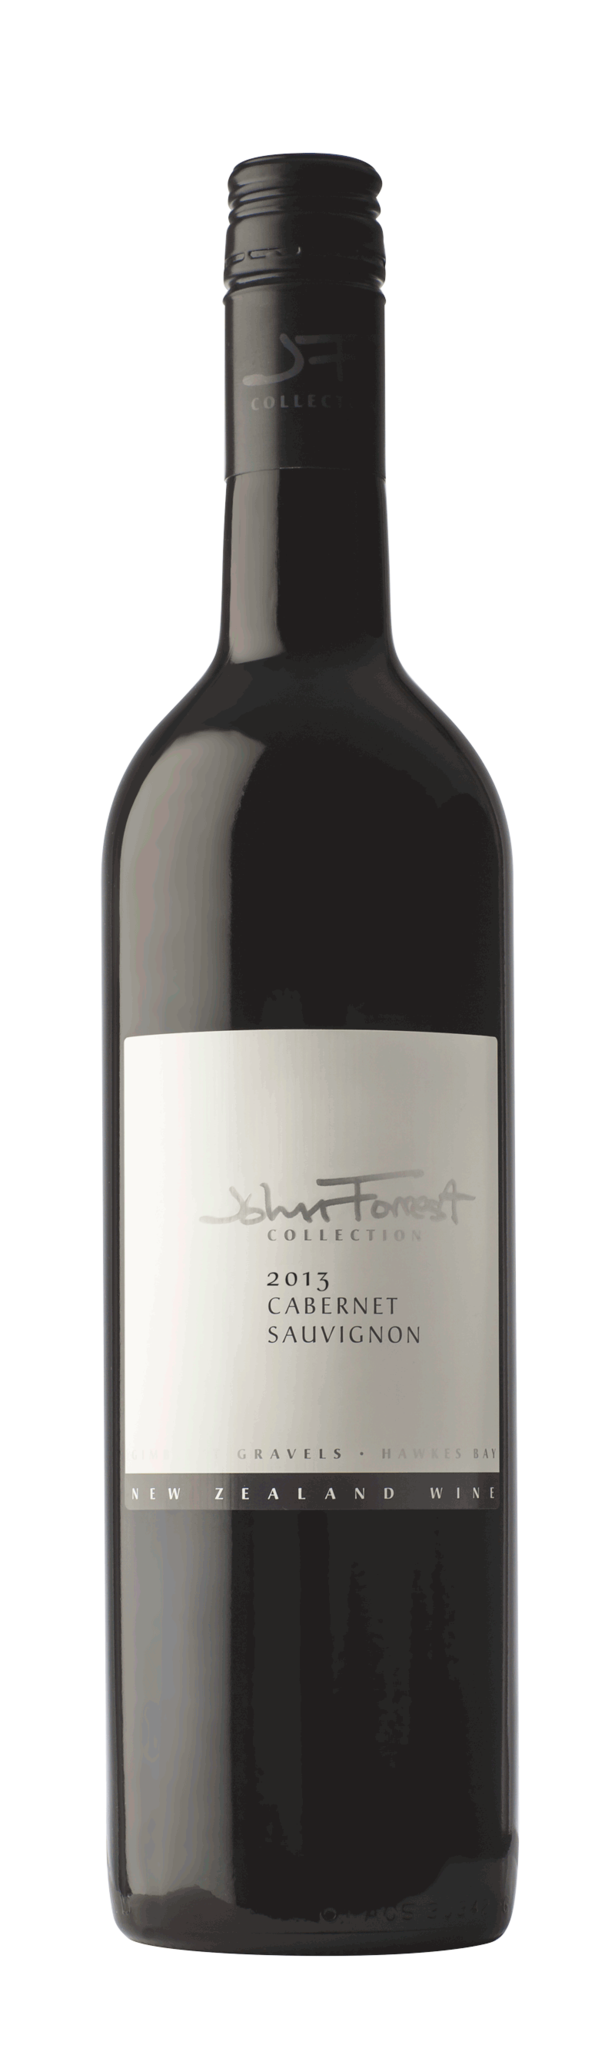 2013 John Forrest Collection Cabernet Sauvignon